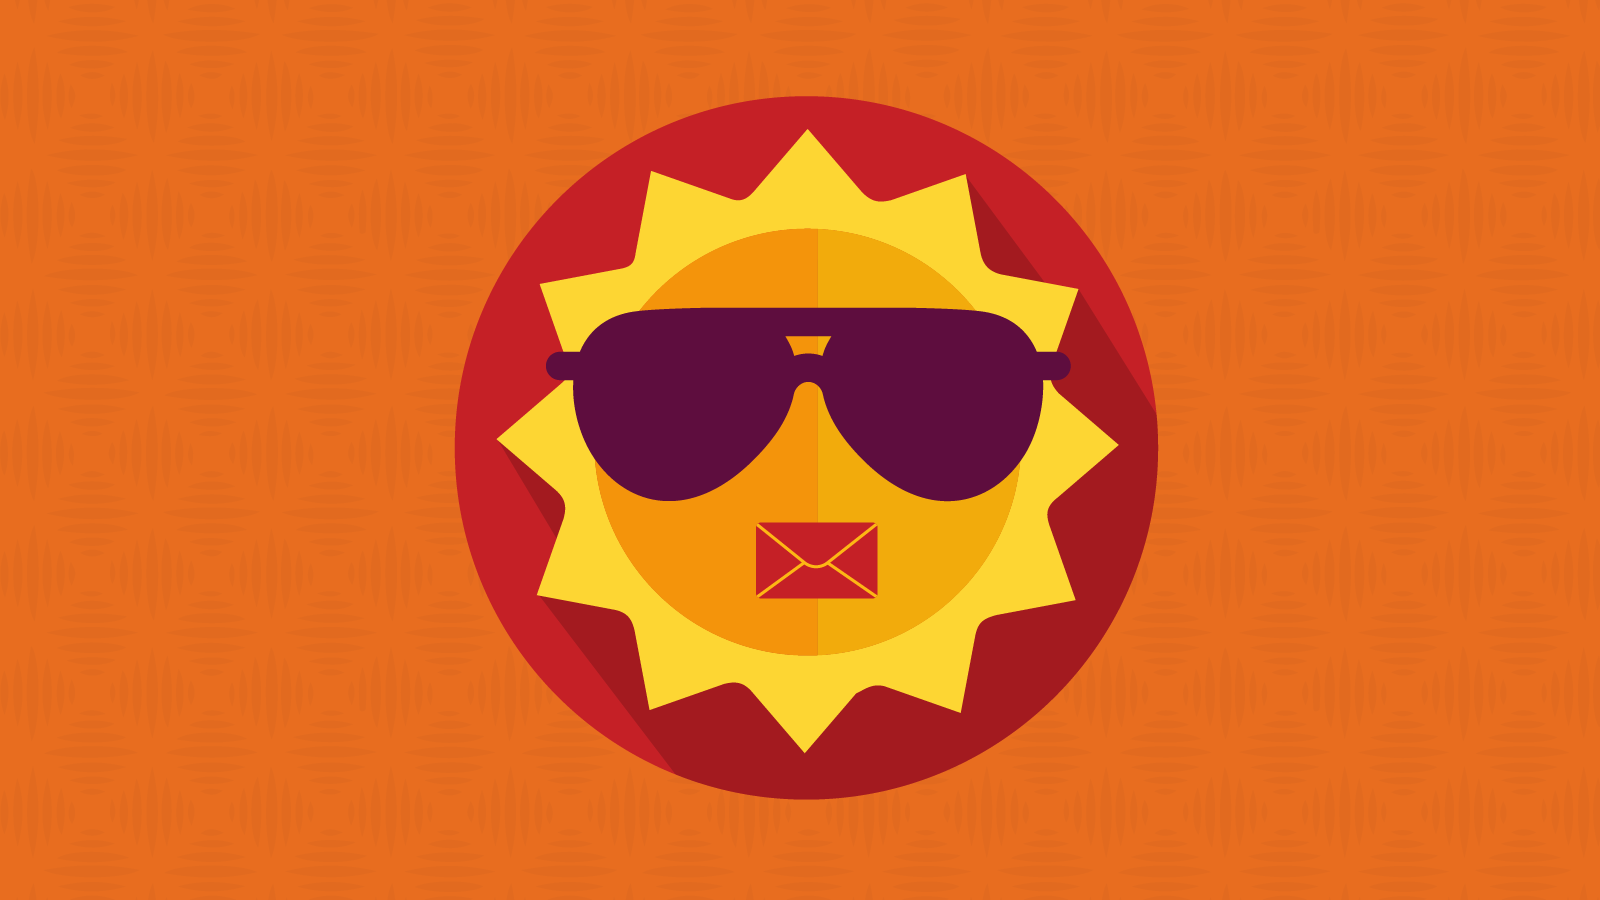 sun with shades and an email envelope mouth